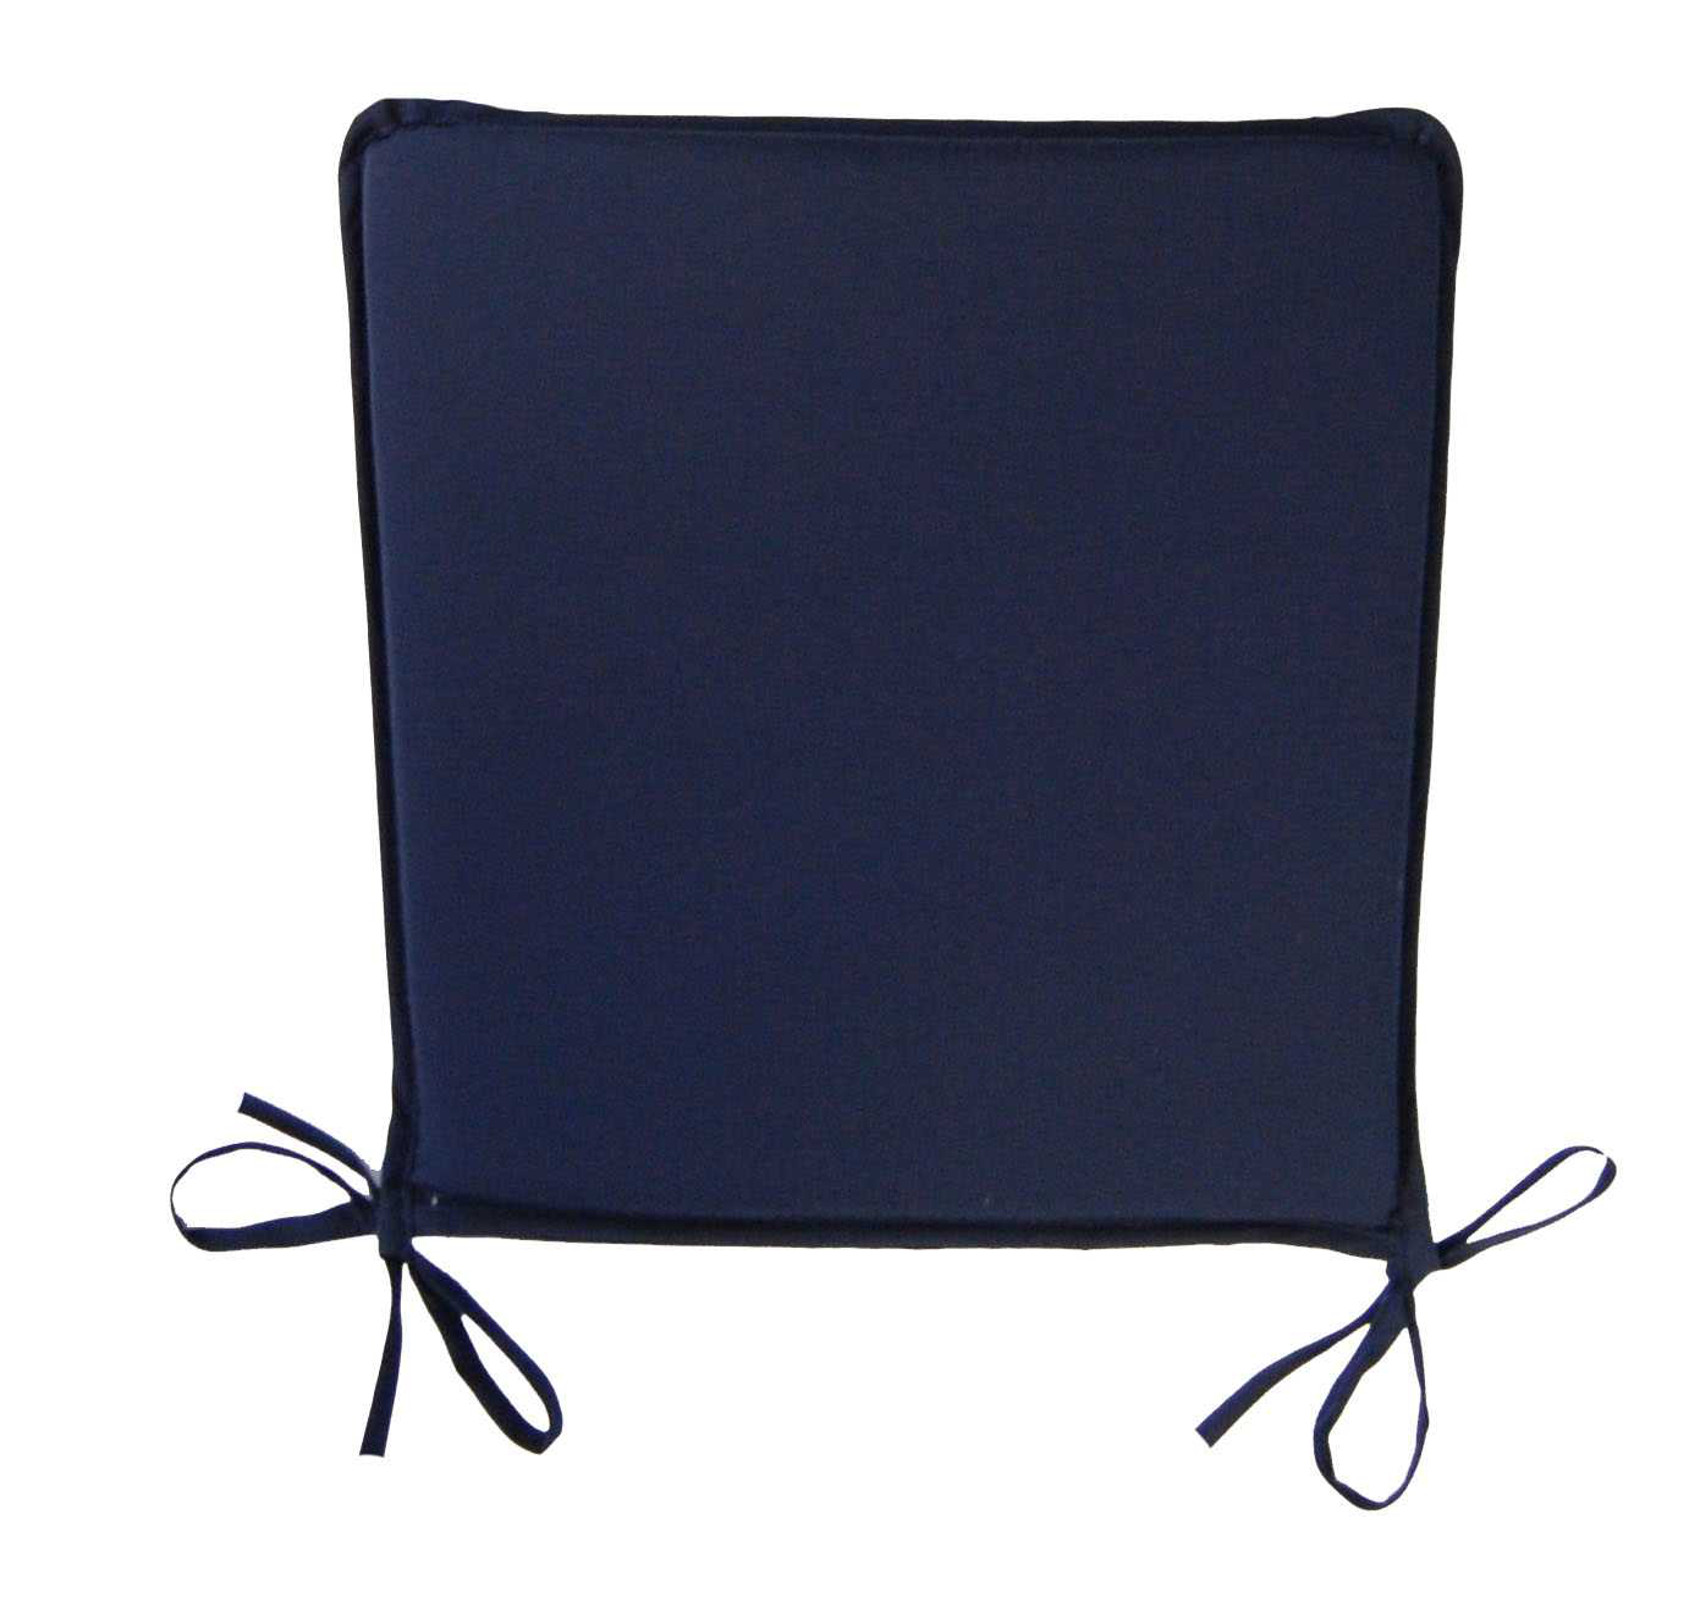 Seat Cushions For Dining Room Chairs Square Kitchen Seat Pad Garden Furniture Dining Room Chair